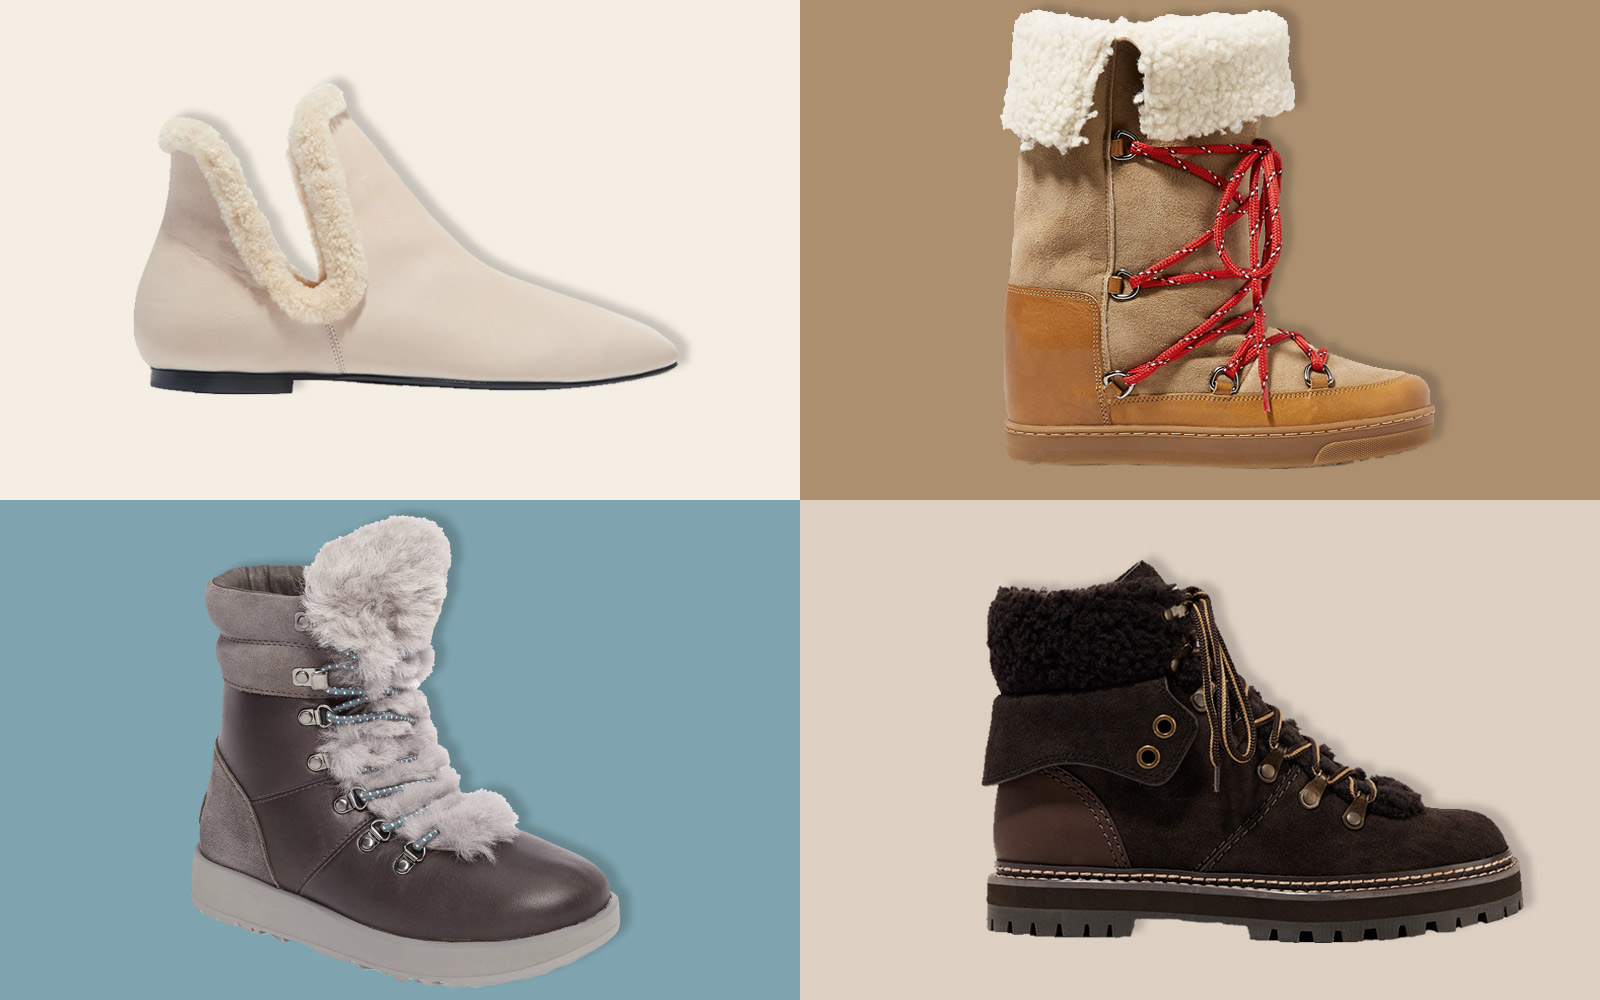 The Best Women's Winter Fashion Boots